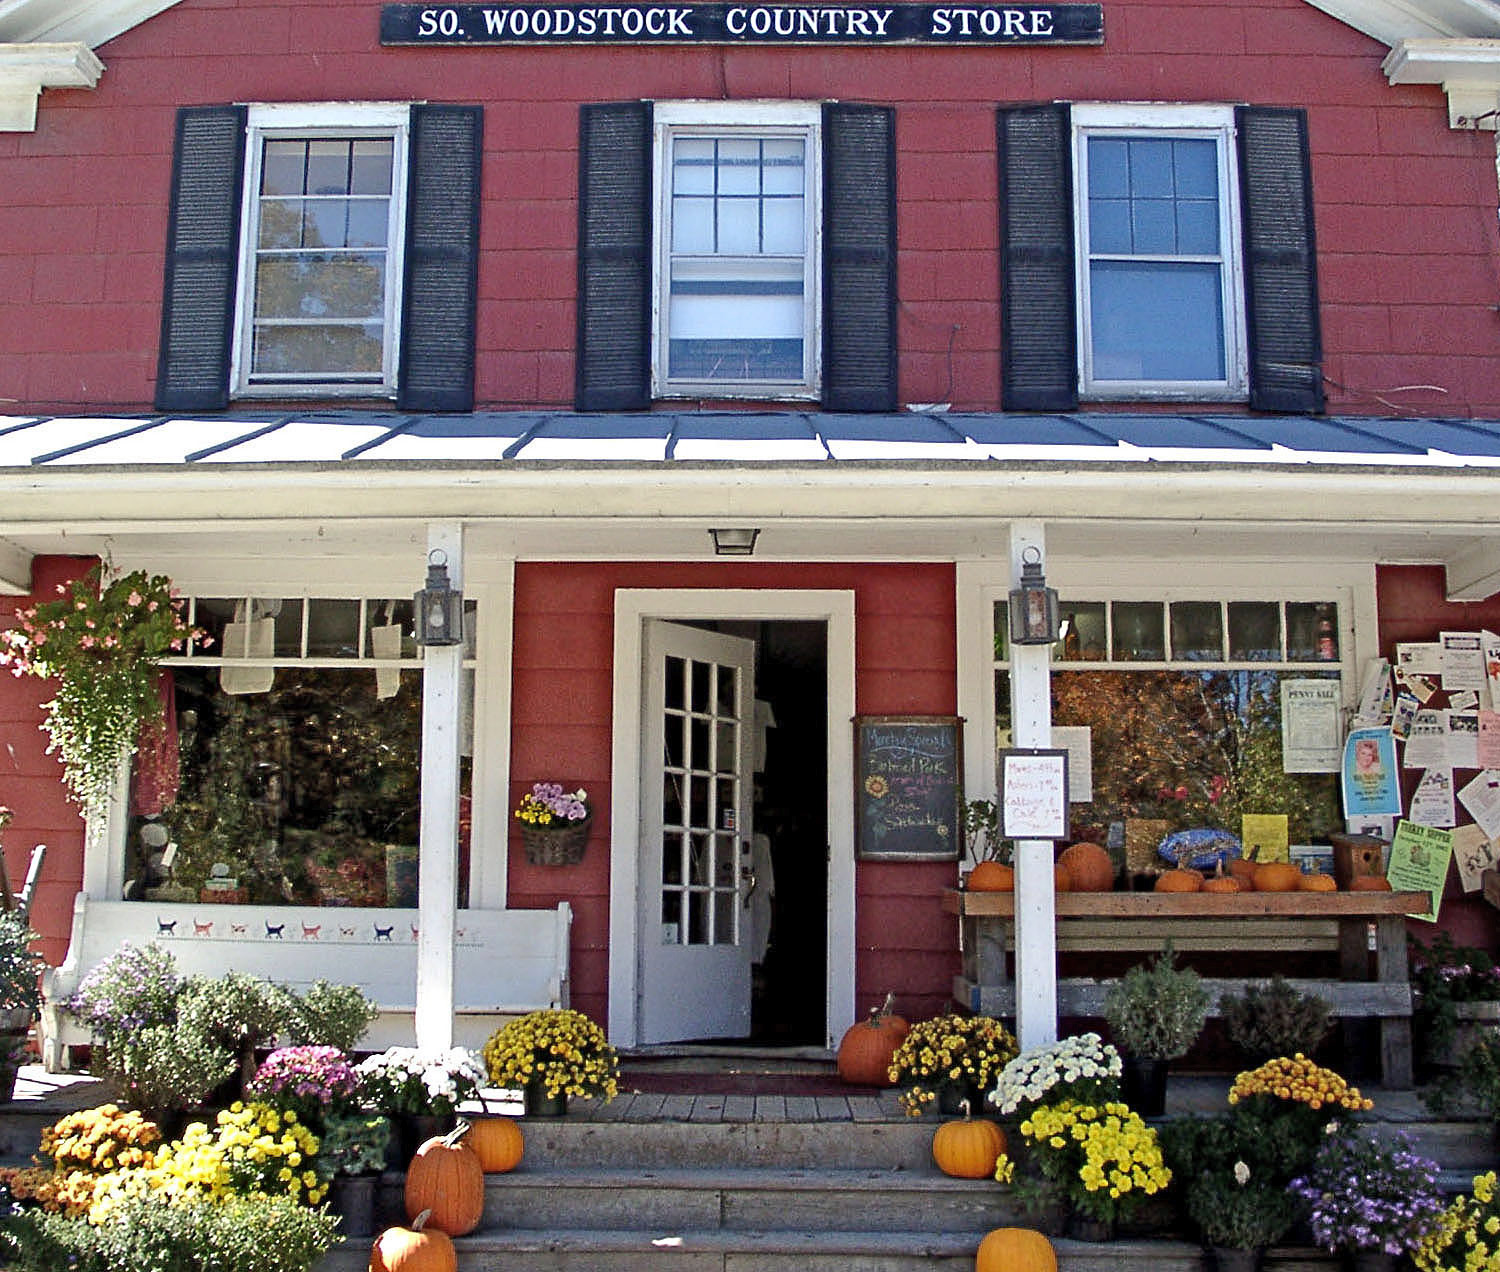 South Woodstock Country Store: Woodstock, VT - Under new ownership and looking better than ever, the South Woodstock Country Store is a perfect destination for a break along your road travels in Vermont.